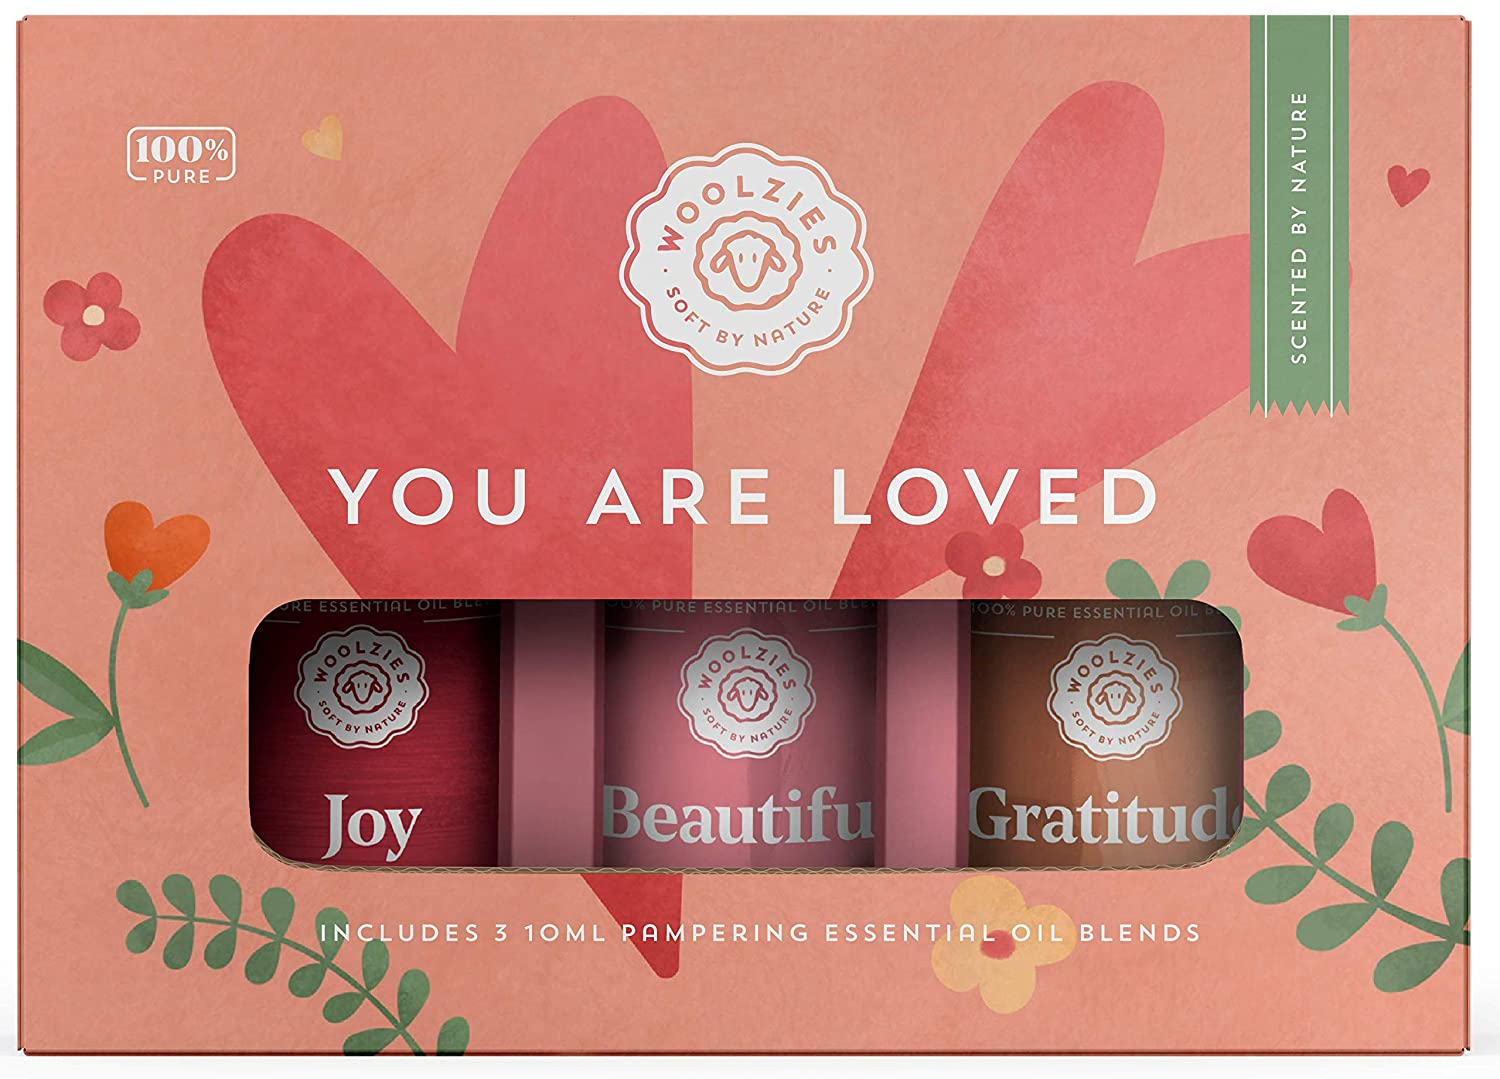 Woolzies You Are Loved Essential Oil Gift Set | Highest Quality Aromatherapy Therapeutic Grade | Includes Joy, Beautiful, and Gratitude Blends | | For Diffusion Internal, or Topical Use